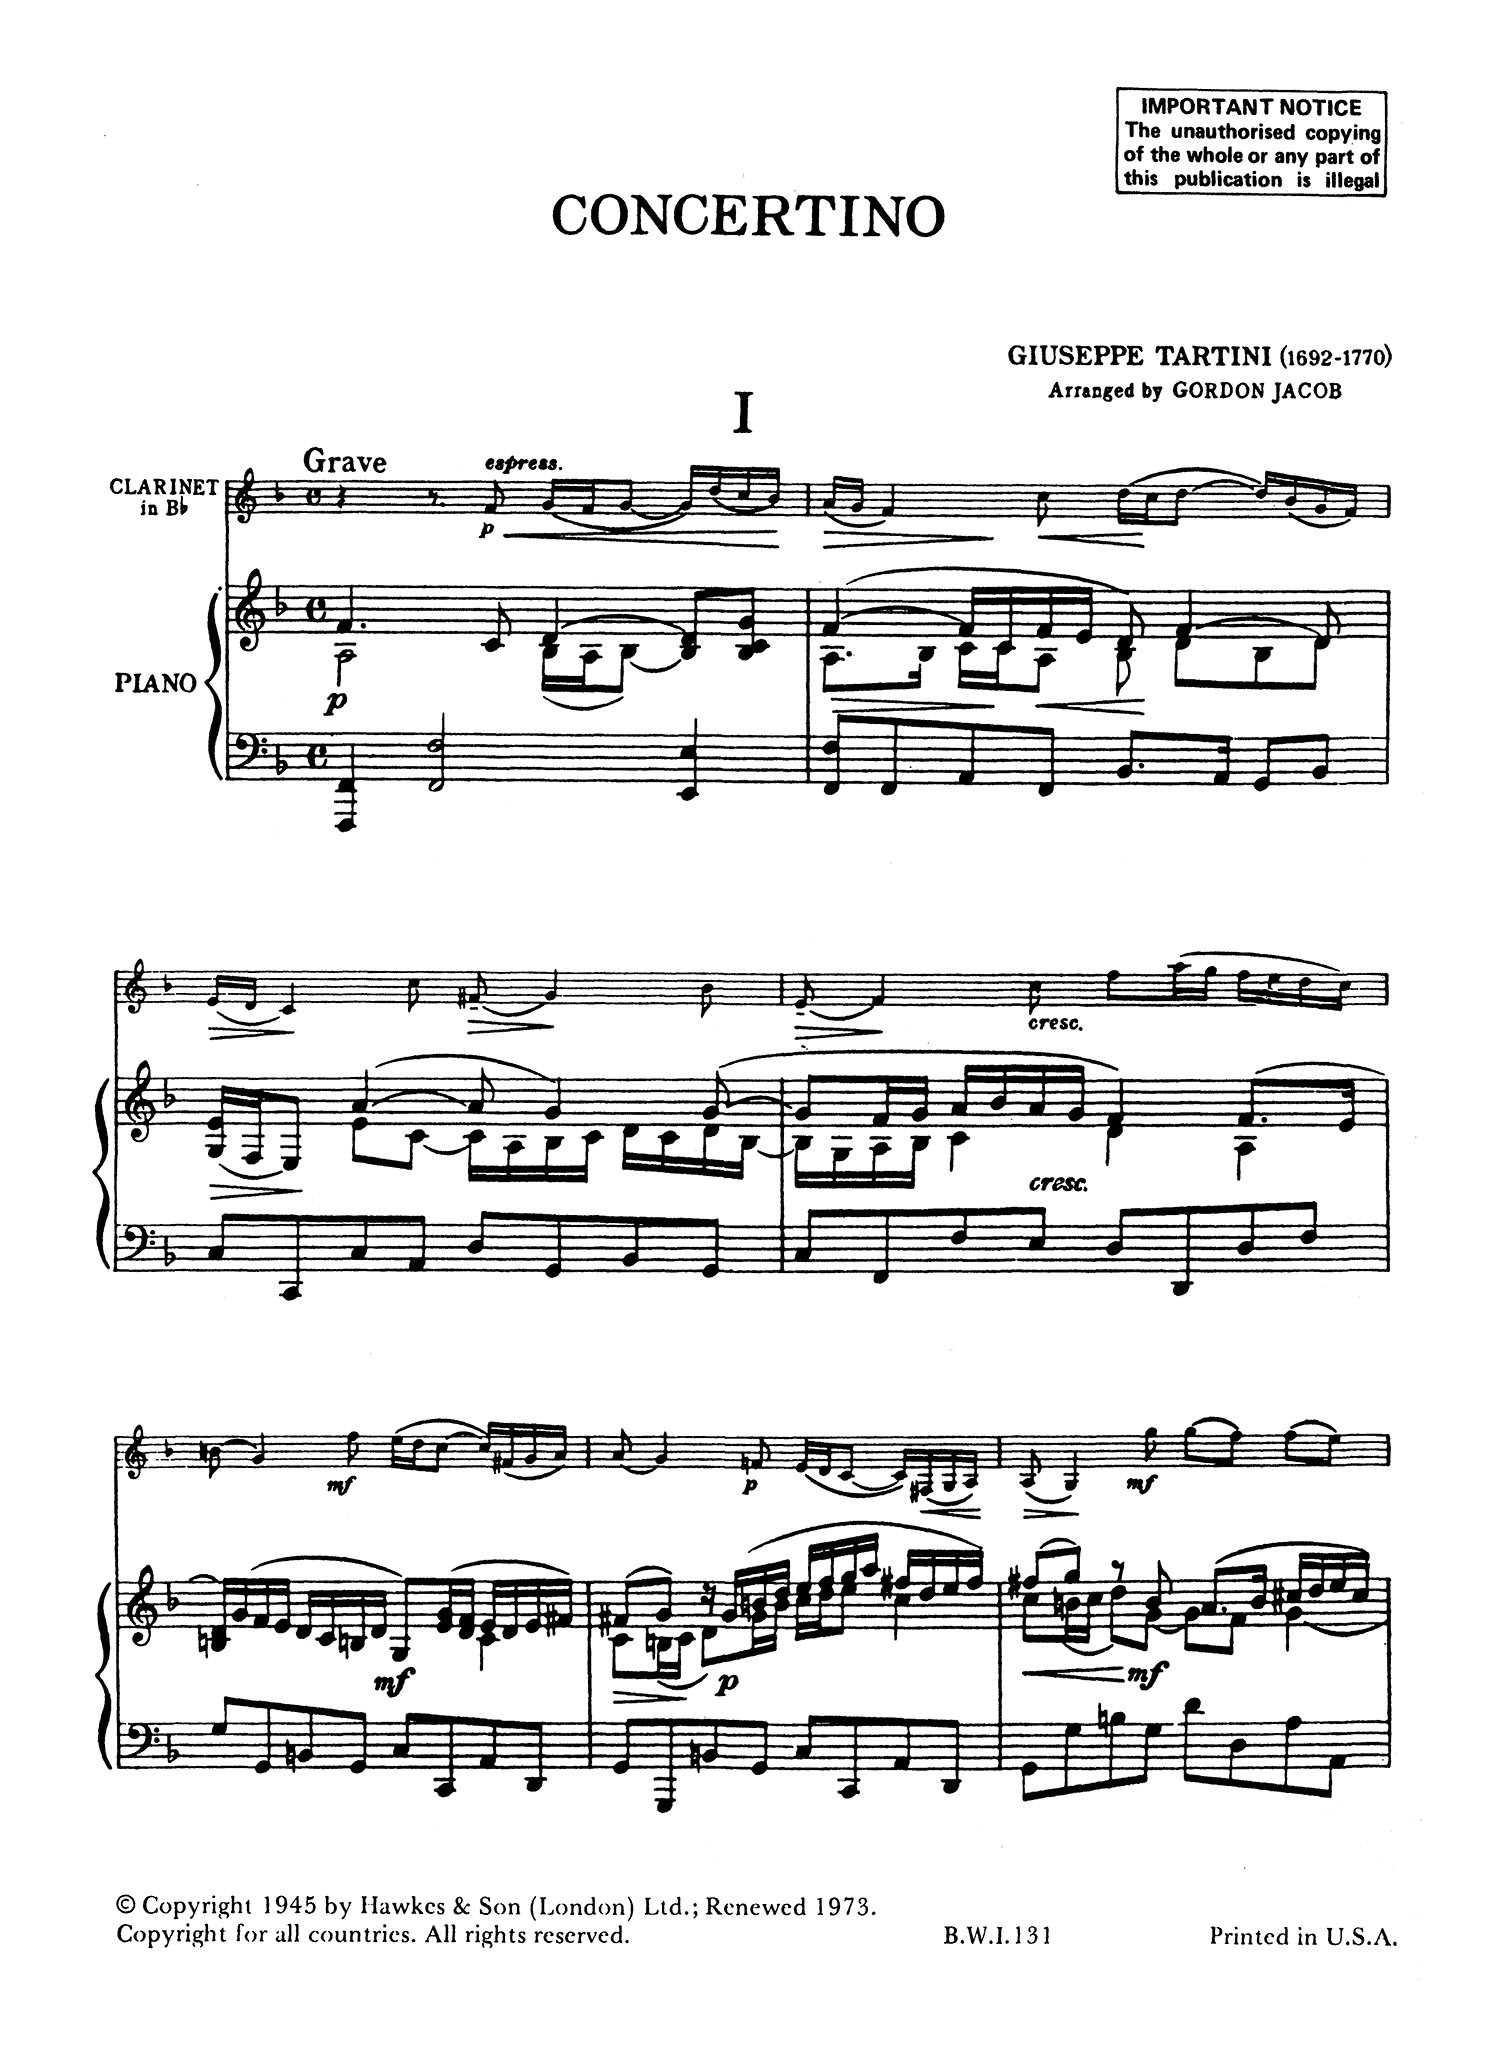 Tartini Jacob Clarinet Concertino - Movement 1